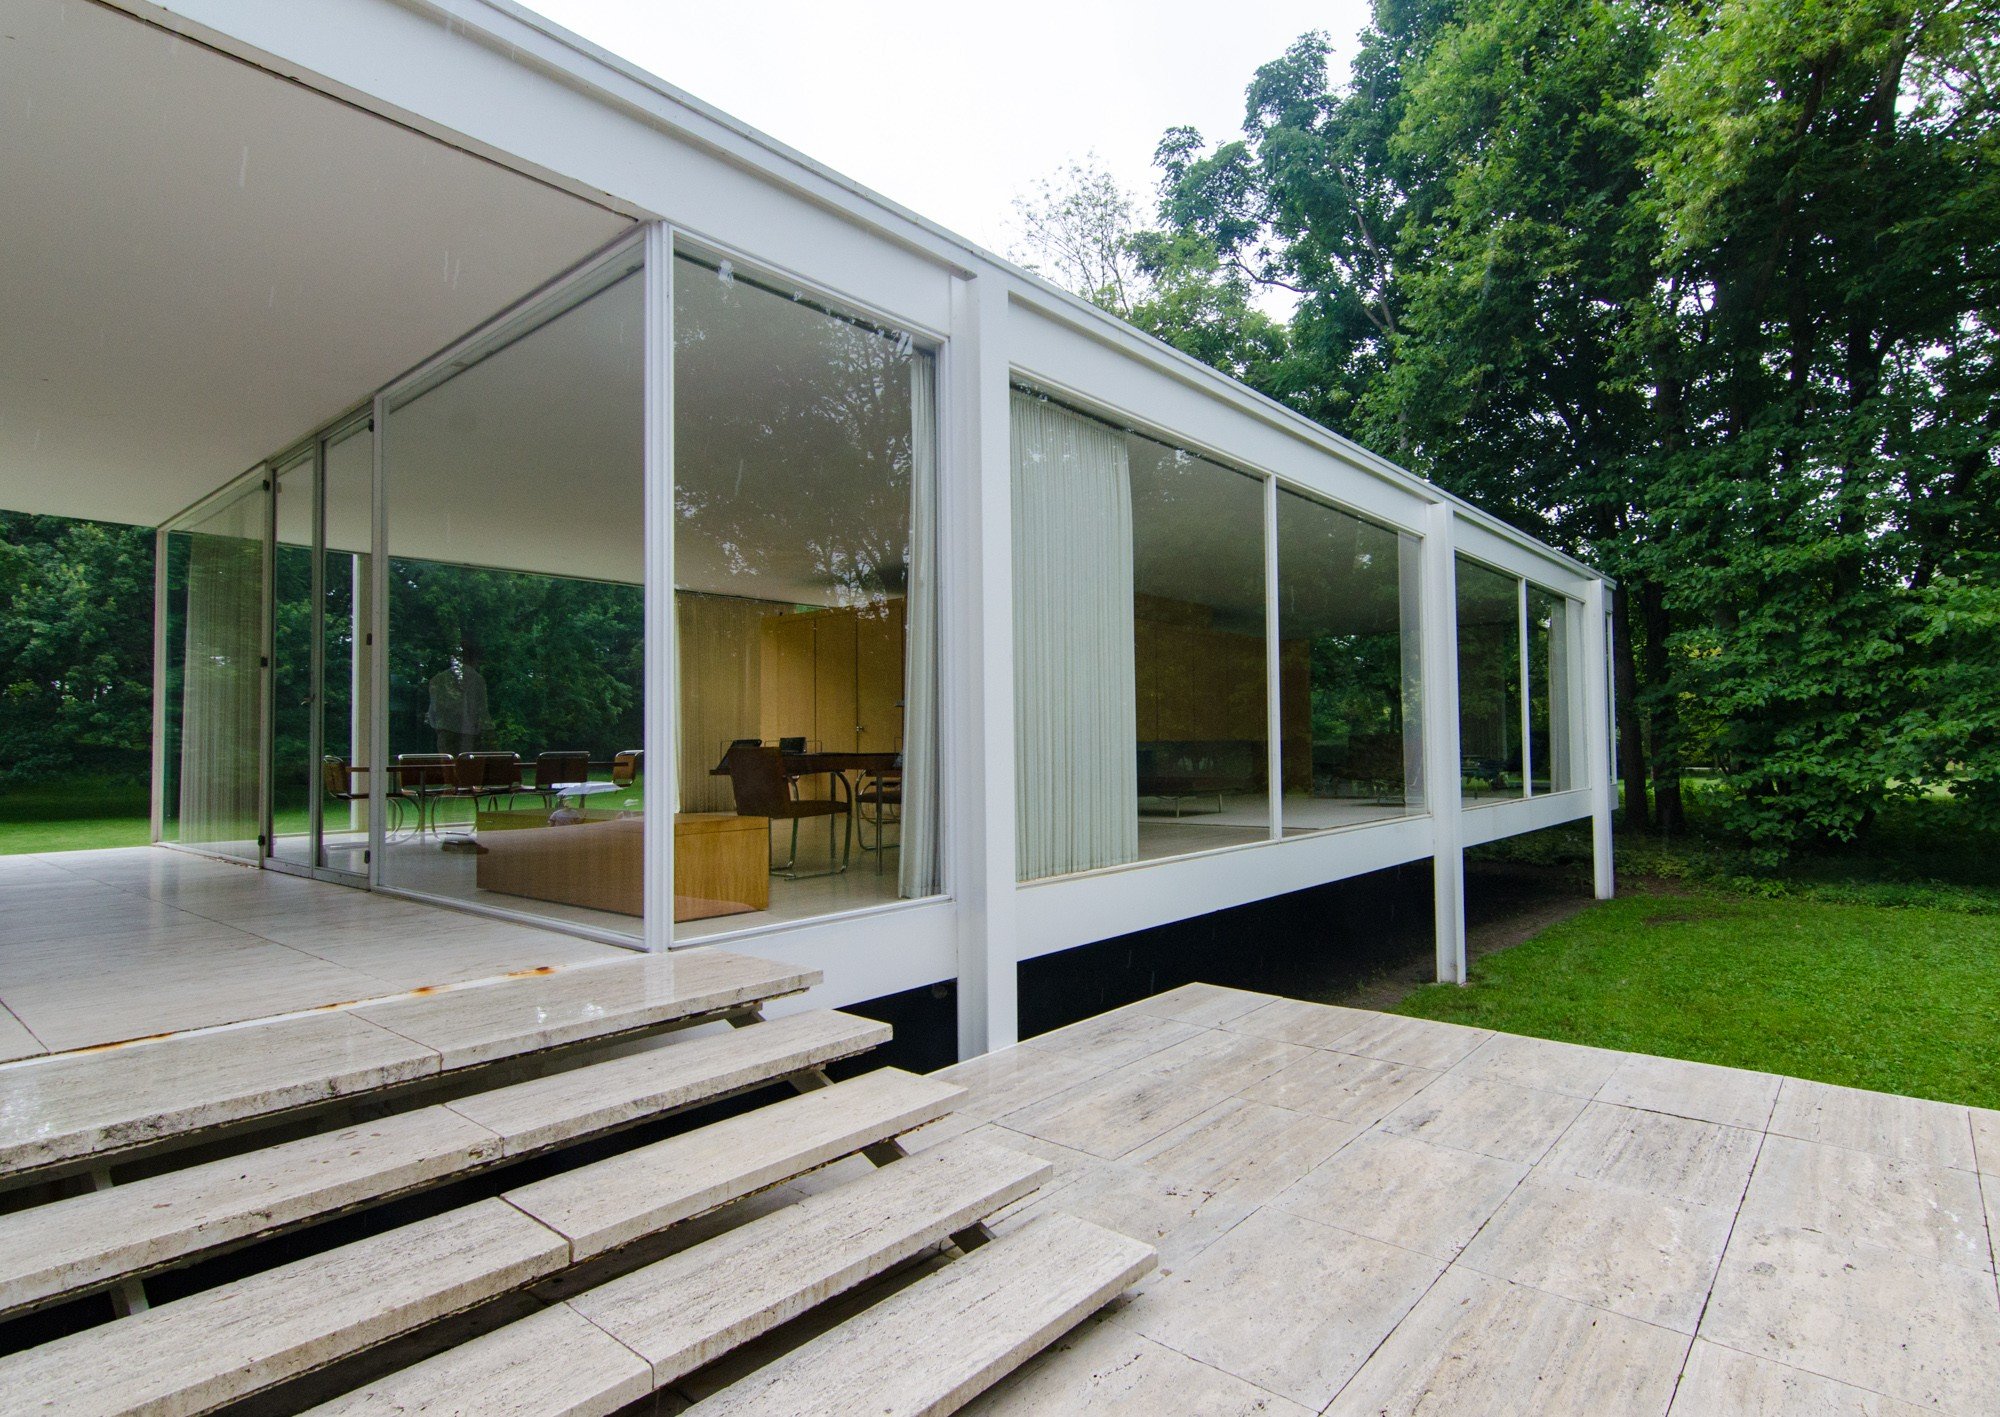 farnsworth house buildings of chicago chicago architecture center cac. Black Bedroom Furniture Sets. Home Design Ideas